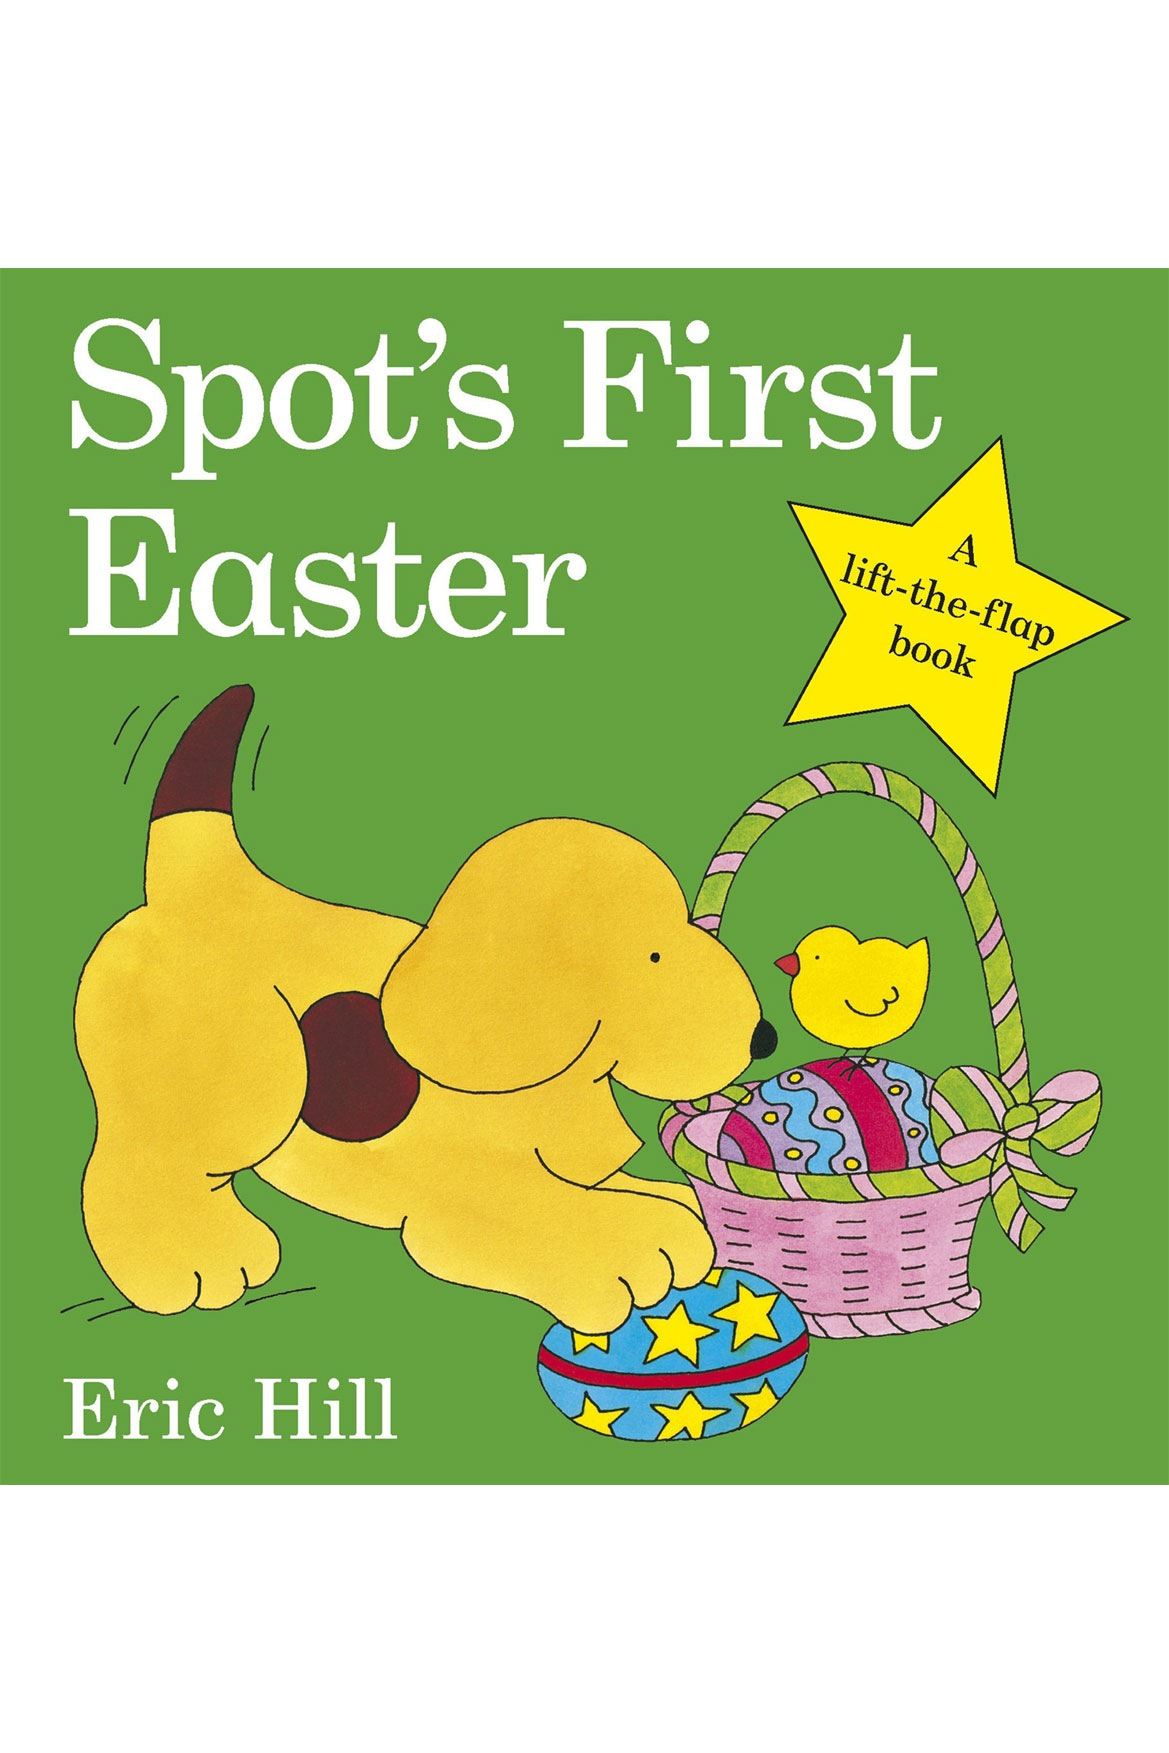 Spots first easter by eric hill hardback myer online spots first easter by eric hill hardback myer online negle Images